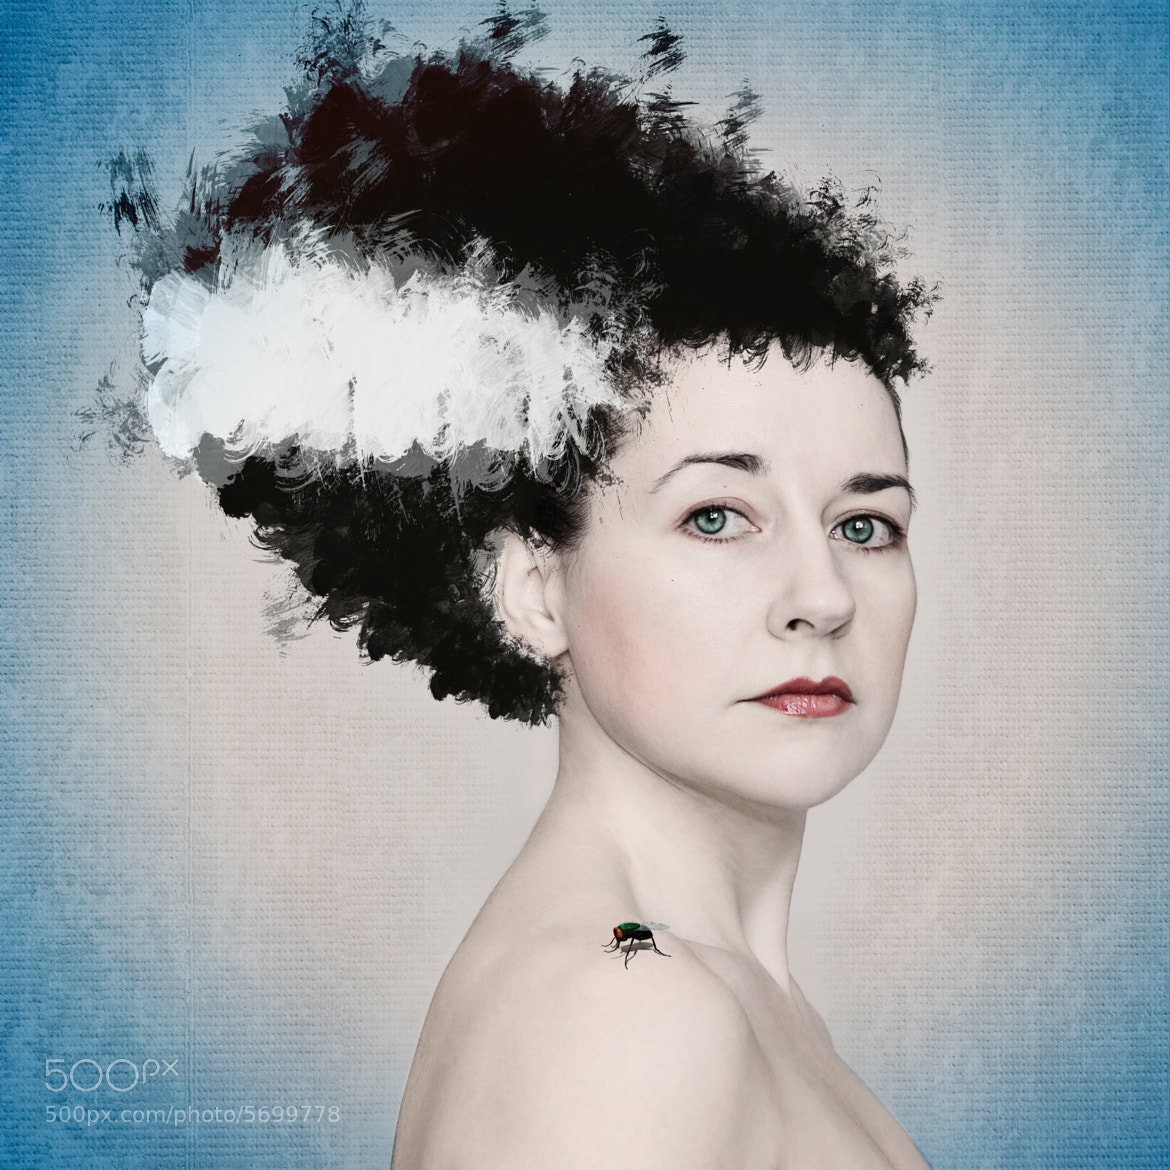 Photograph Self portrait Bride of Frankenstein by Beth Duri on 500px